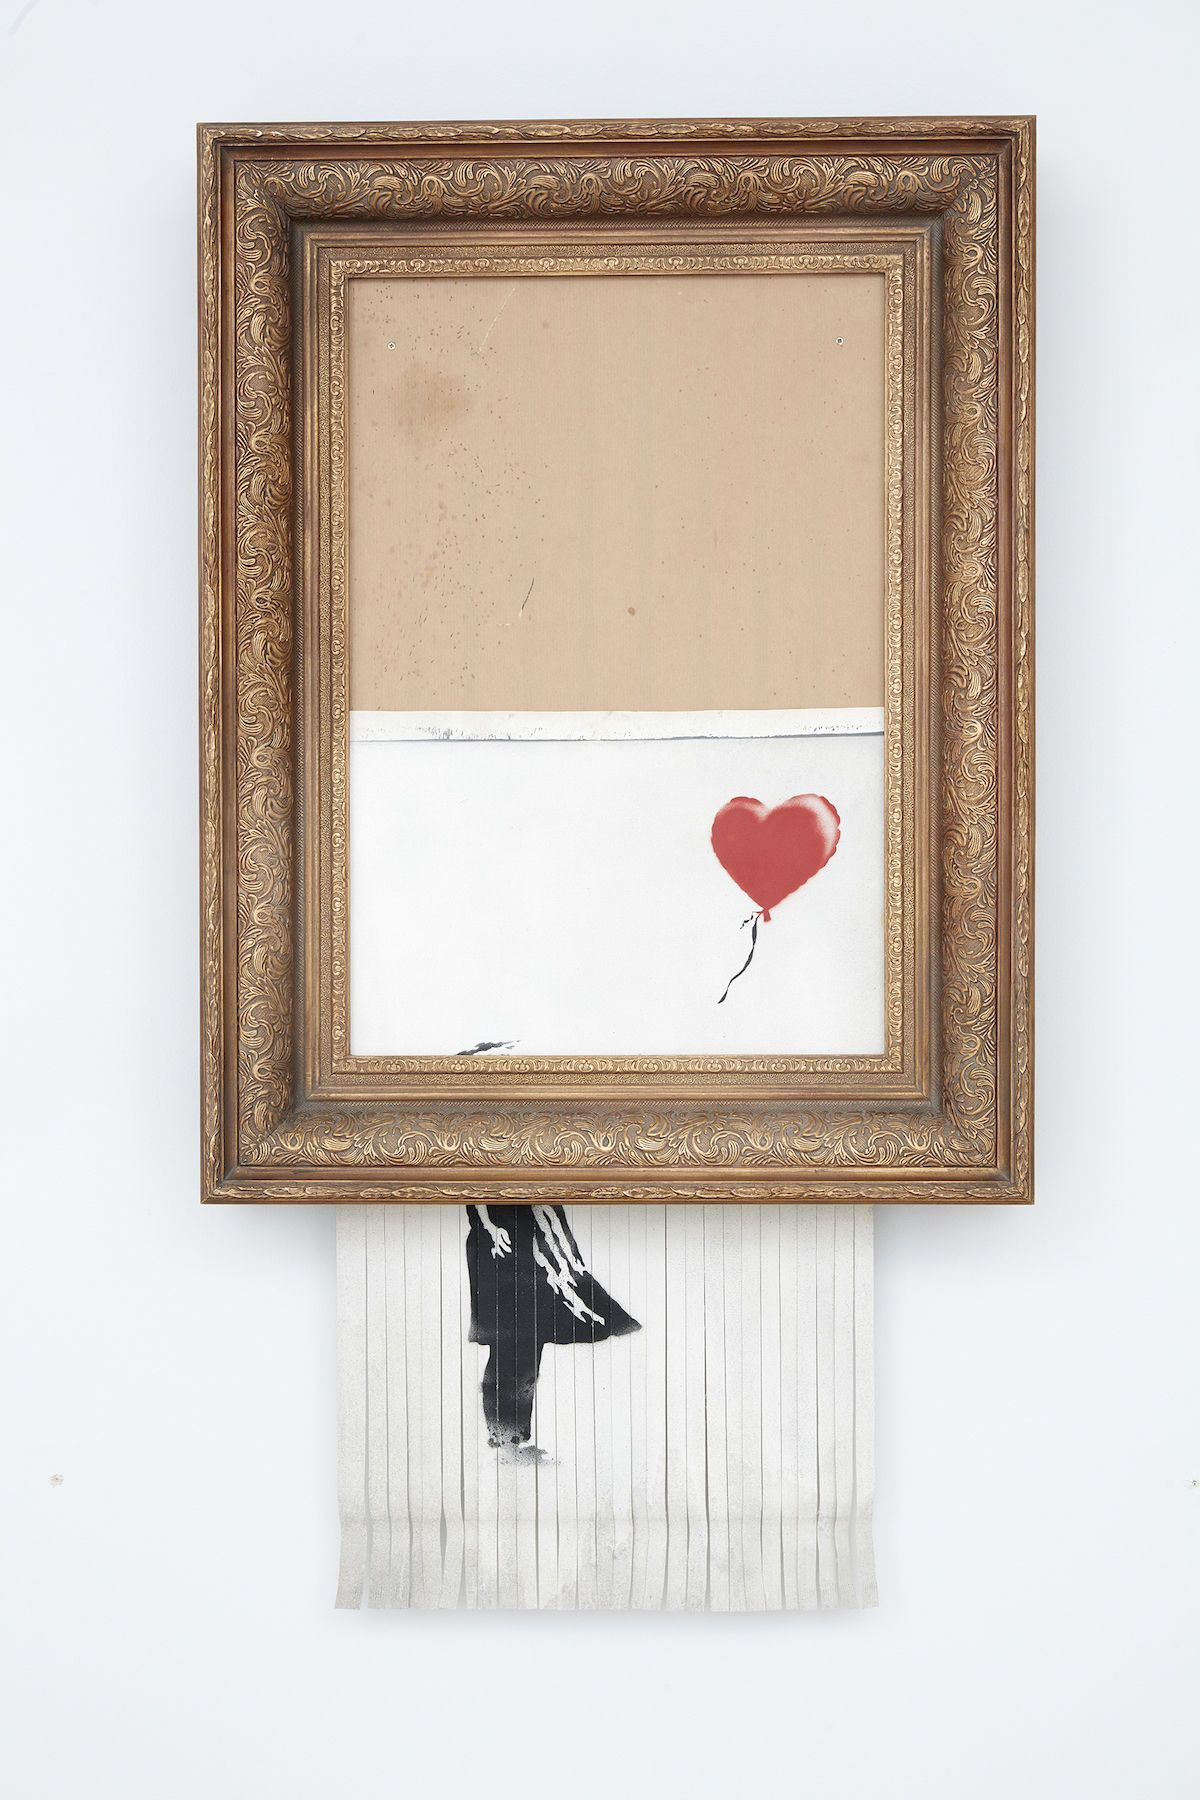 Banksy Self-destructs after Selling for $1.3 Million at Sotheby's #banksyart